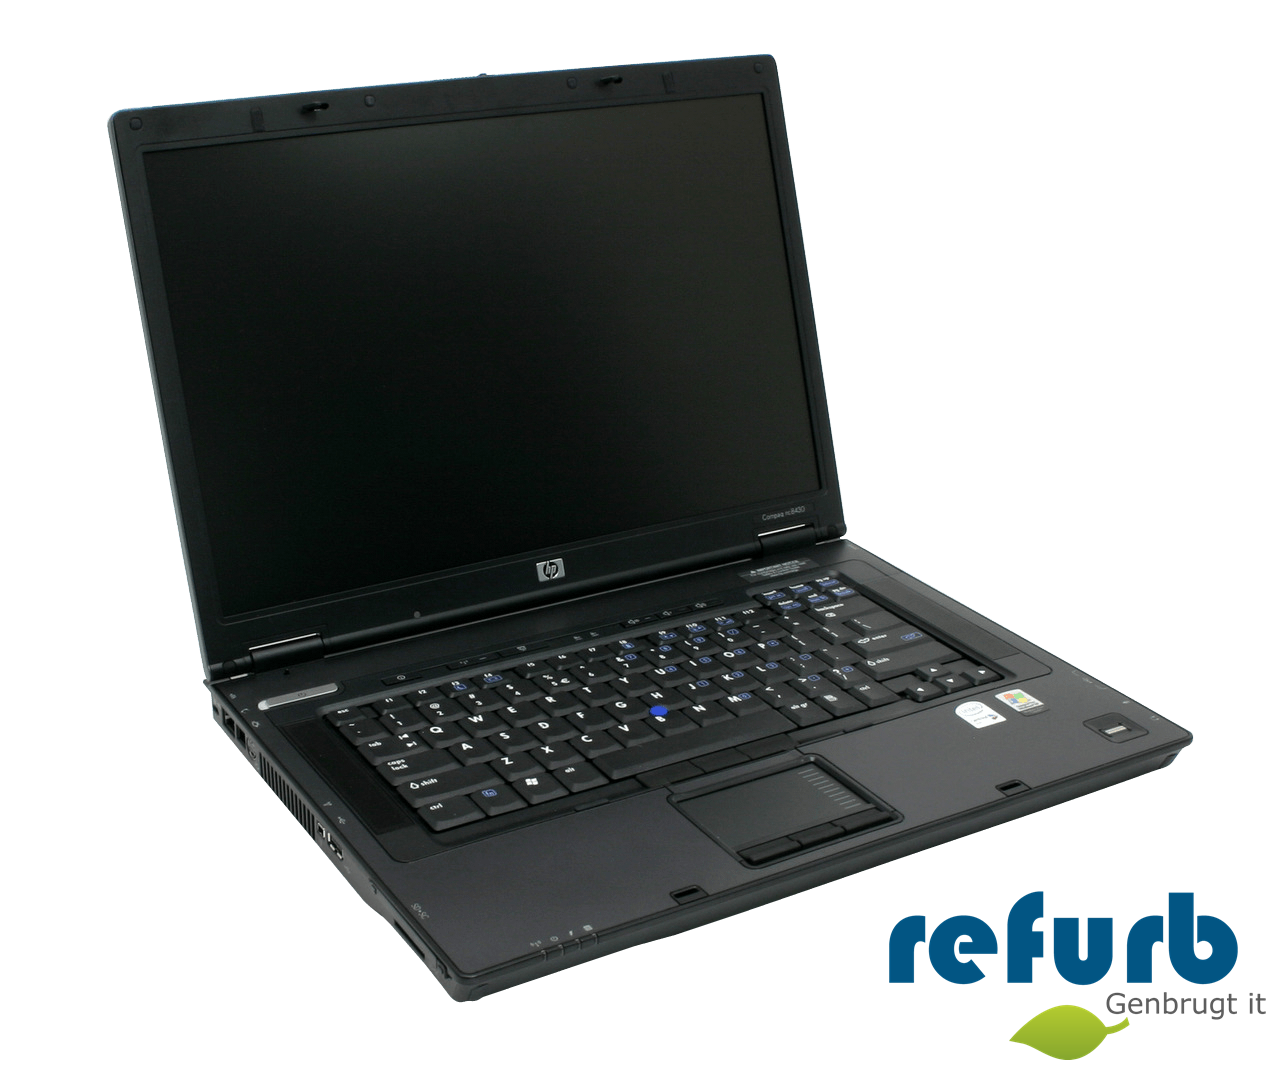 Hp Compaq 8430 Drivers Download